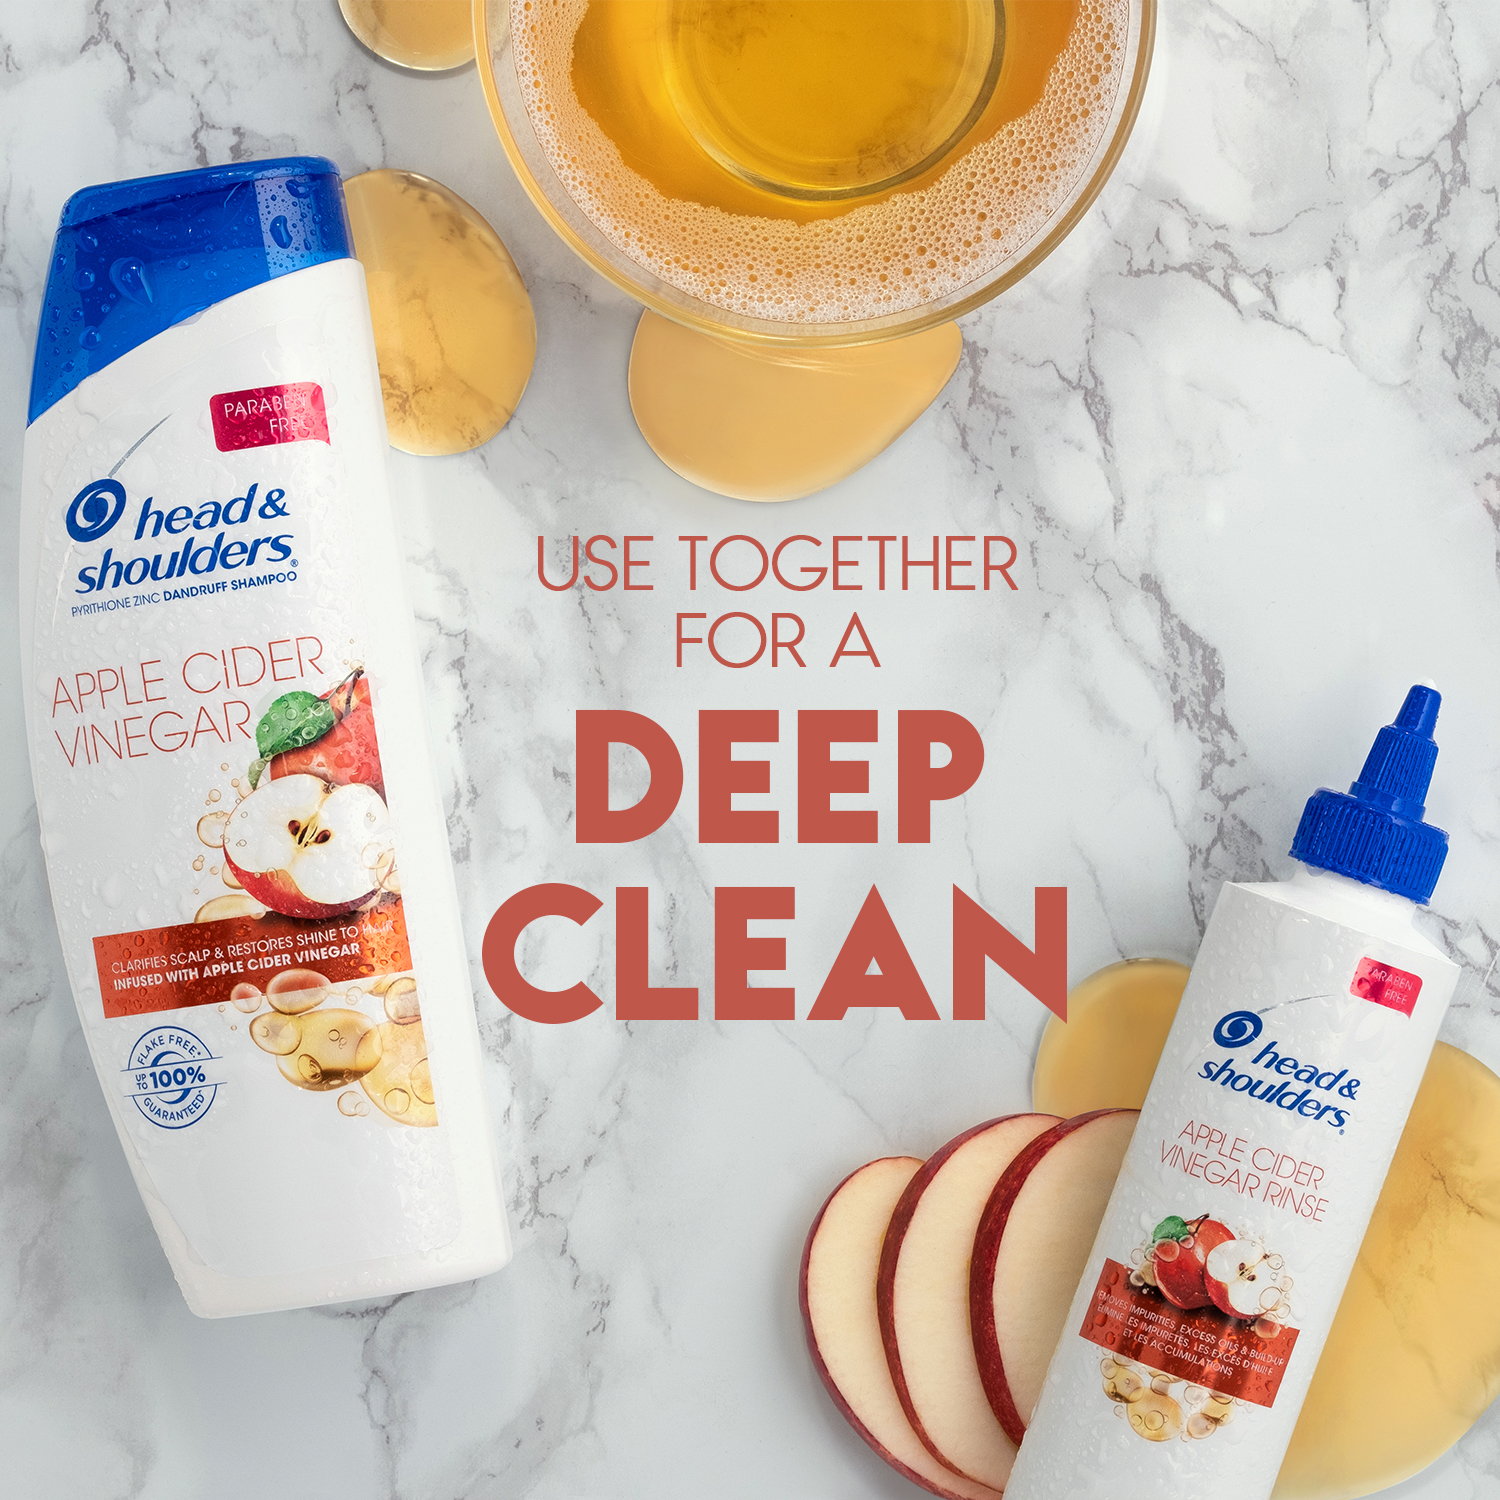 Refresh Your Health and Beauty Routine for Spring | Spend Less with P&G and Publix Becky Salgado Miami Mom Collective head and shoulders apple cider vinegar